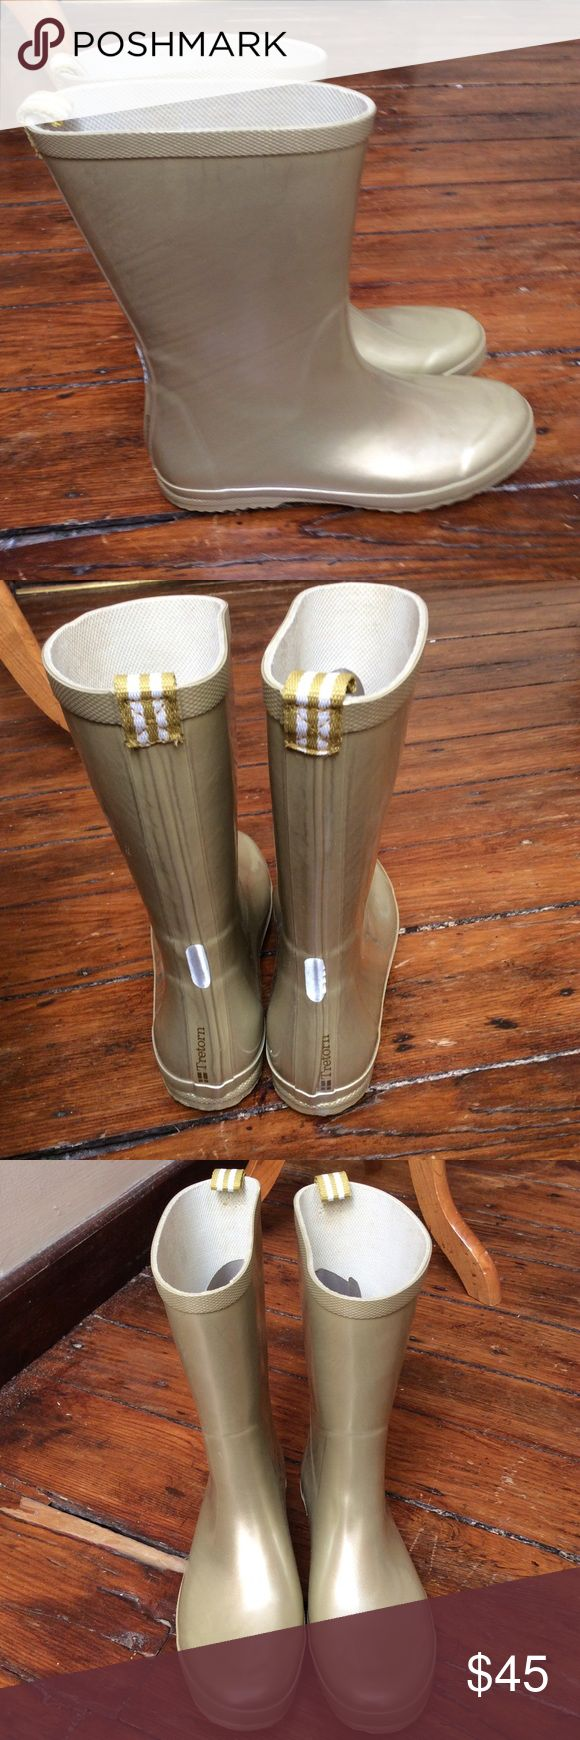 Tretorn Metallic Gold Mid Calf RUBBER RAIN BOOT 38 Make this yours! New without box Tretron Mid Calf Metallic Gold Rubber Wellies Boots! Great for rain or snow!  Retail price $80.  The Measurements: Women's Size 38, Approx. US Size 7.5 or 8. Tretorn Shoes Winter & Rain Boots